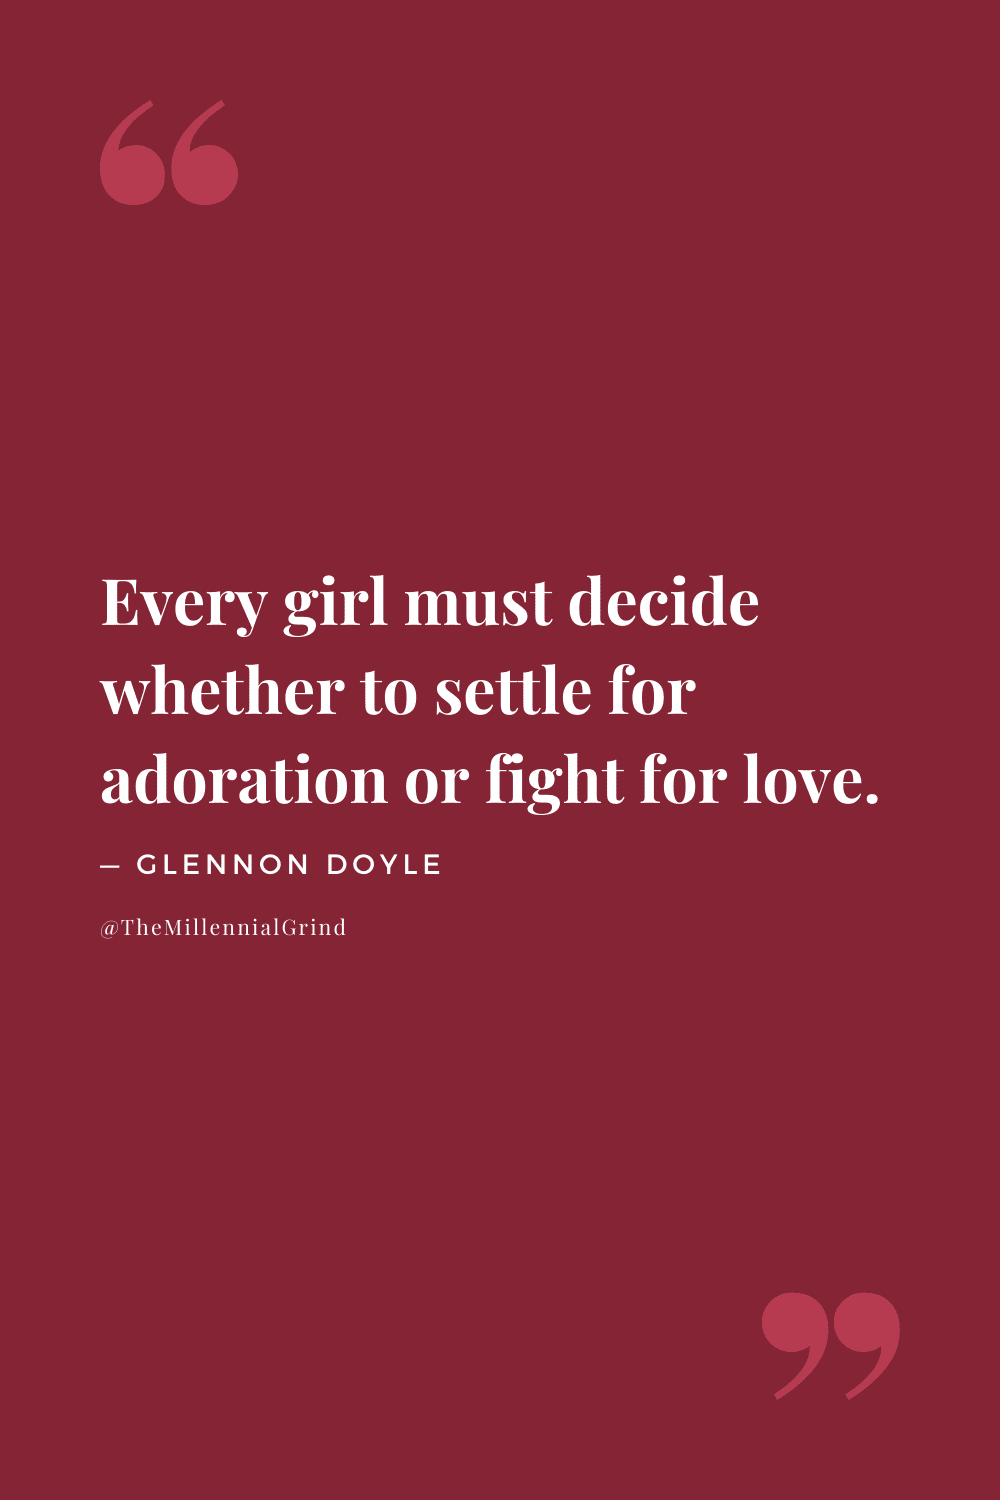 Quotes from Love Warrior by Glennon Doyle